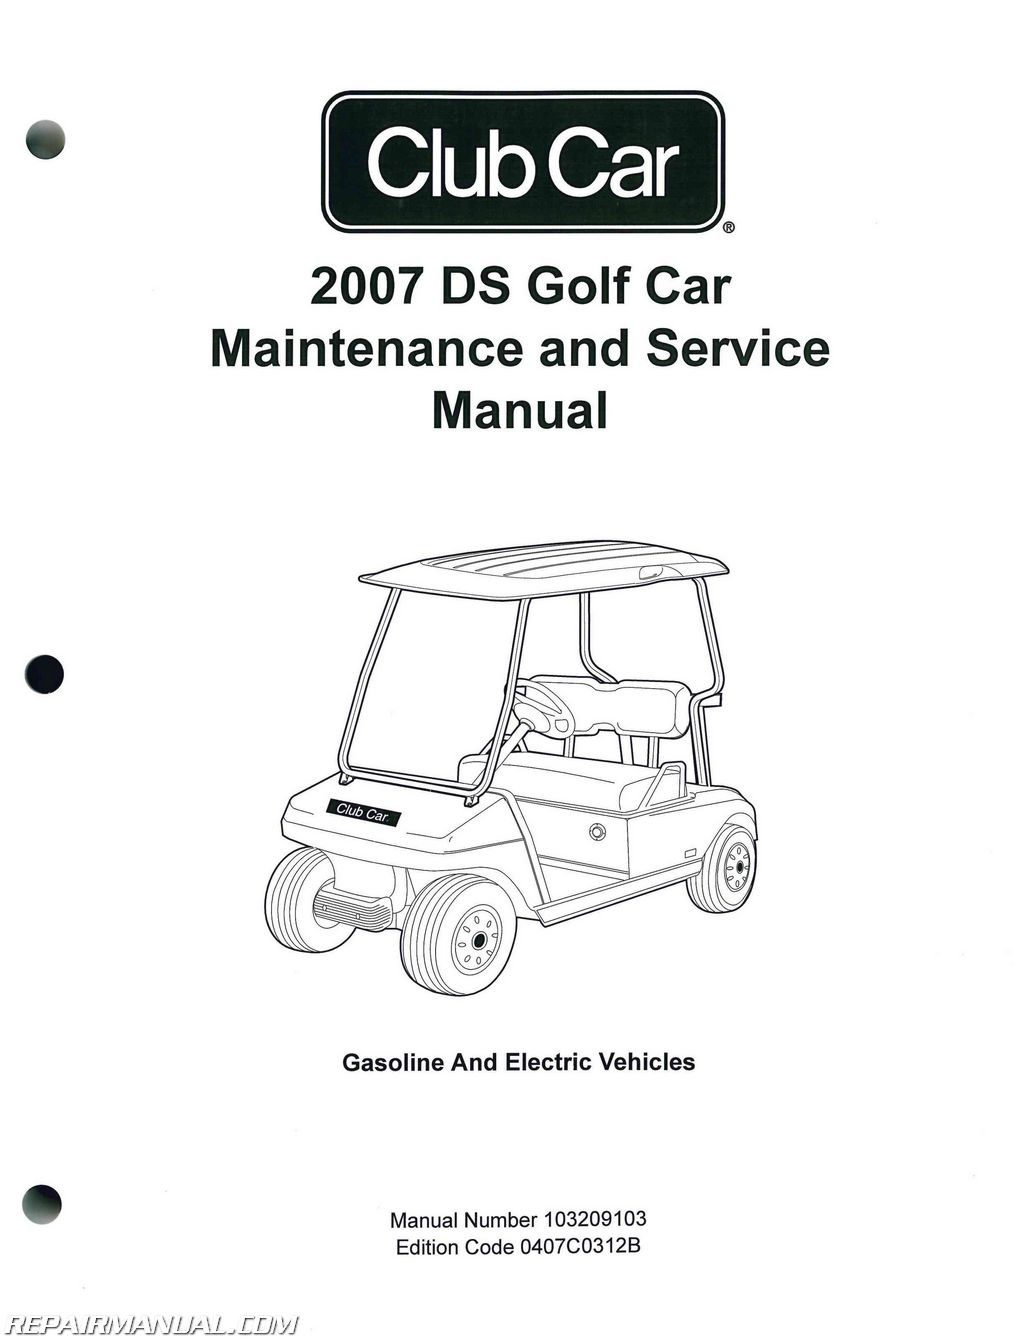 58002682 Yamaha Electric Gas Golf Cart Car G11 further Yamaha G19e Wiring Diagram Wiring Diagrams furthermore Columbia Par Car Schematic likewise Golf Cart Repair Manual also 105827982 Yamaha G11 14 16 19 20 Golf Cart Service Repair Manual. on yamaha g2 golf cart service manual